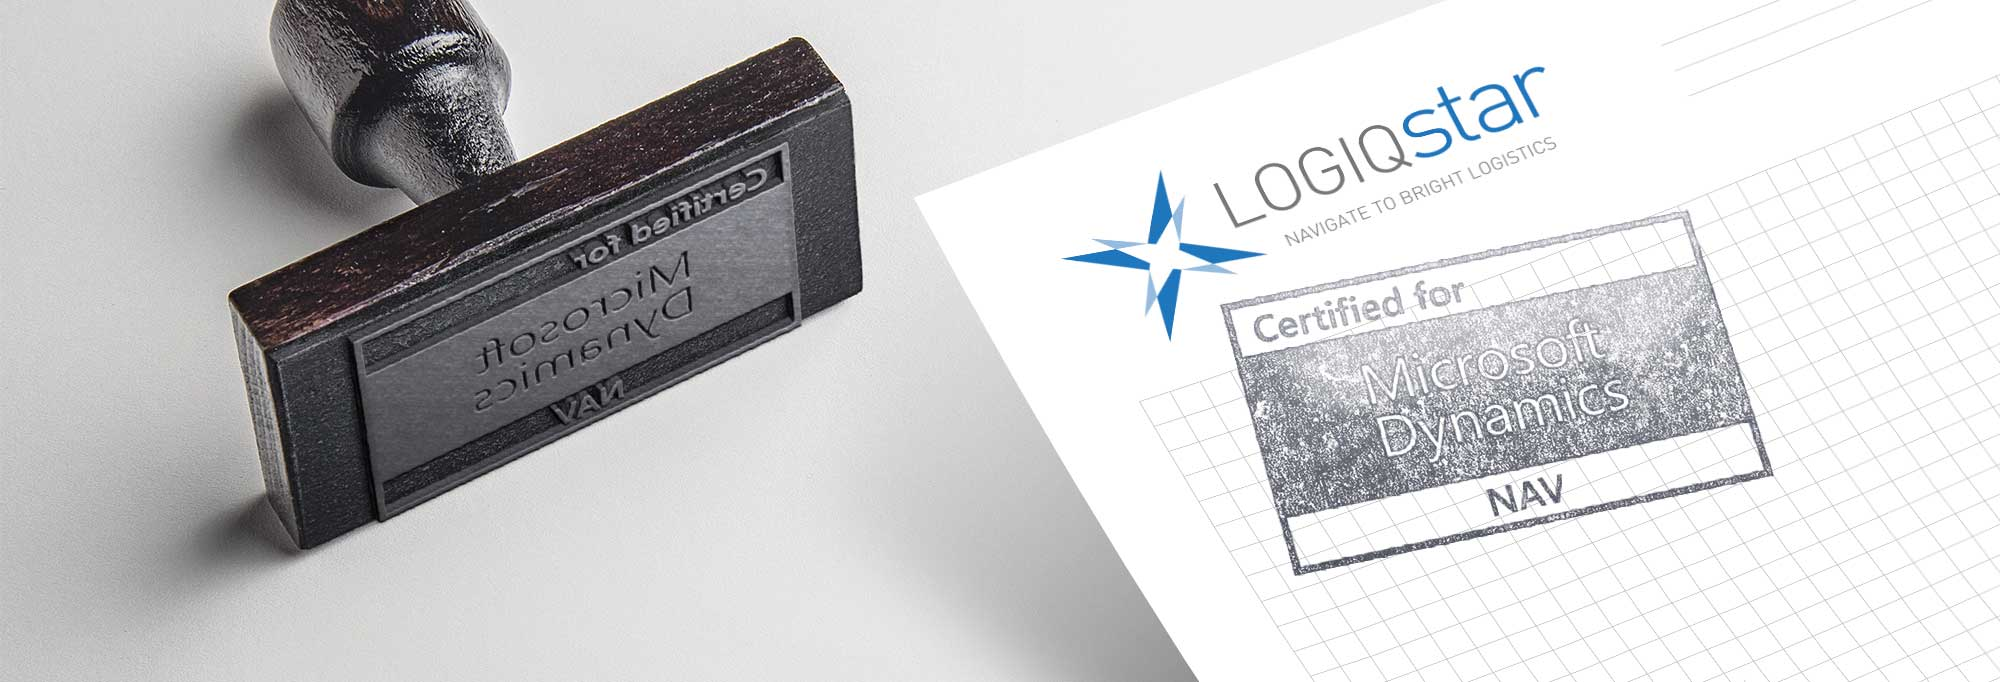 Logiqstar 5.0 passed with flying colors